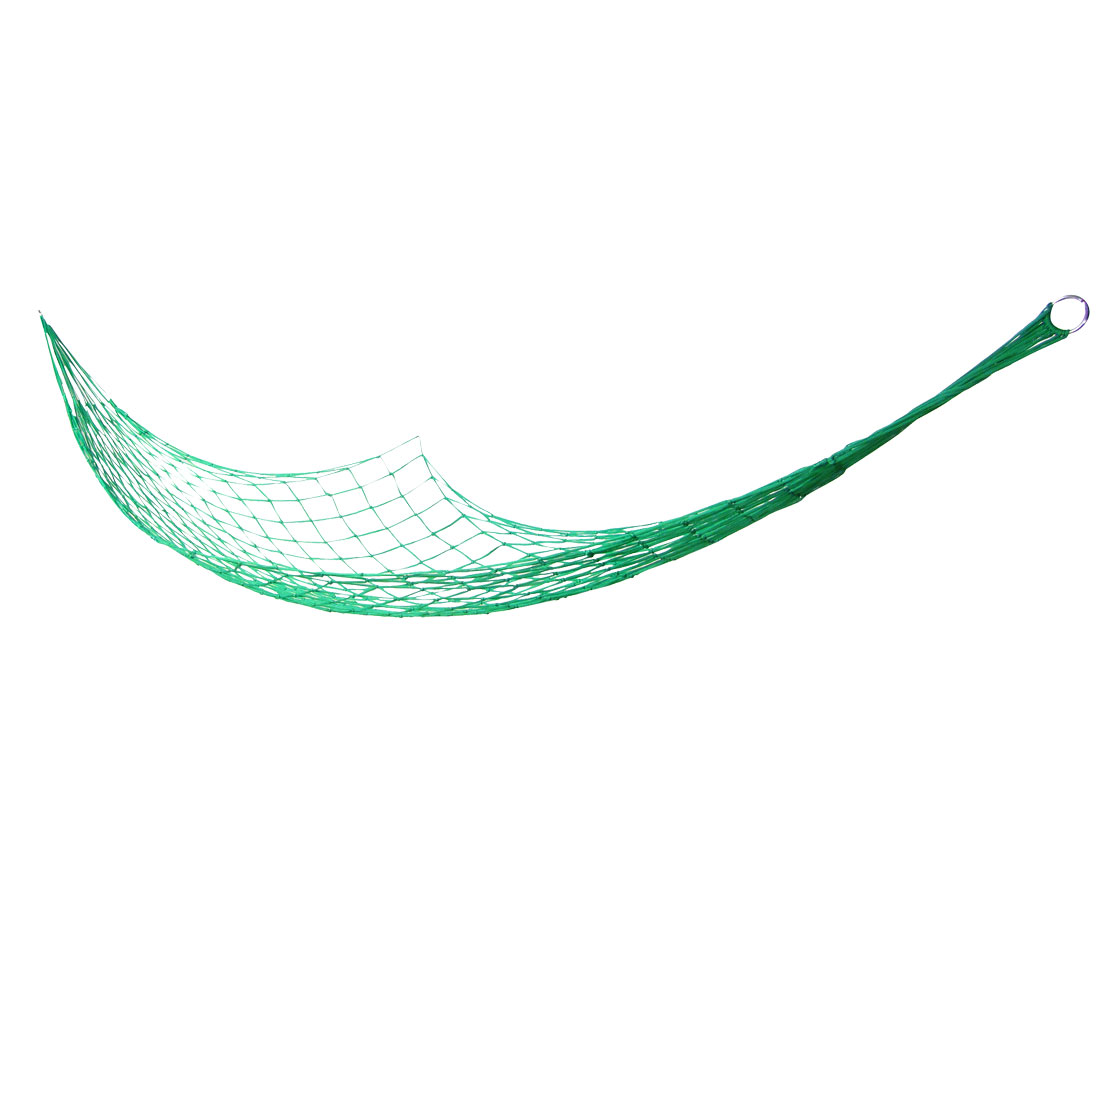 "Metal Ring 106.3"" Length Hammock Mesh Net Sleeping Bed Green"